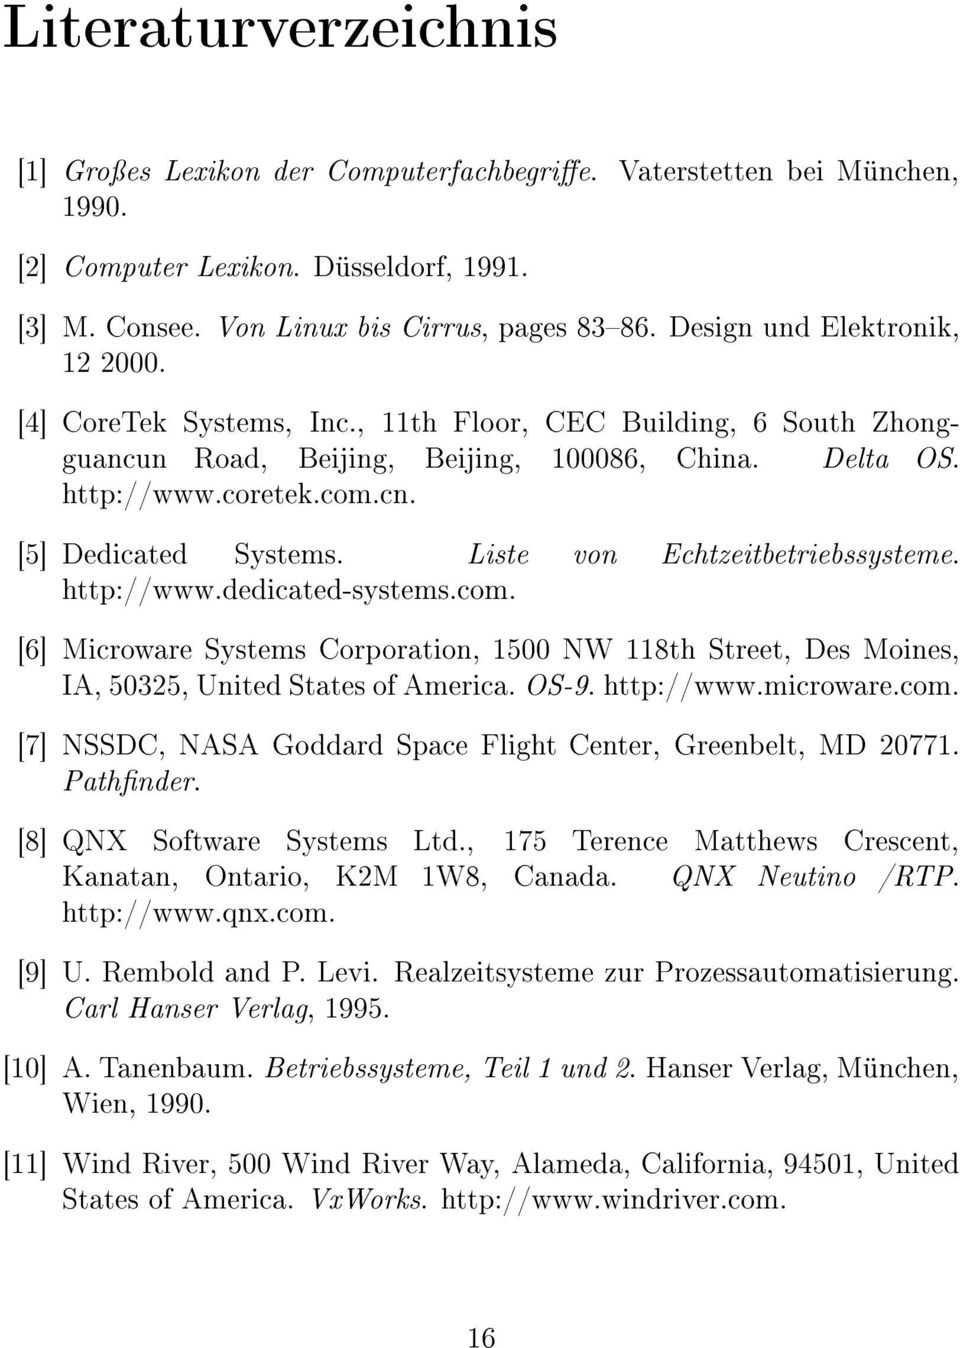 [5] Dedicated Systems. Liste von Echtzeitbetriebssysteme. http://www.dedicated-systems.com. [6] Microware Systems Corporation, 1500 NW 118th Street, Des Moines, IA, 50325, United States of America.